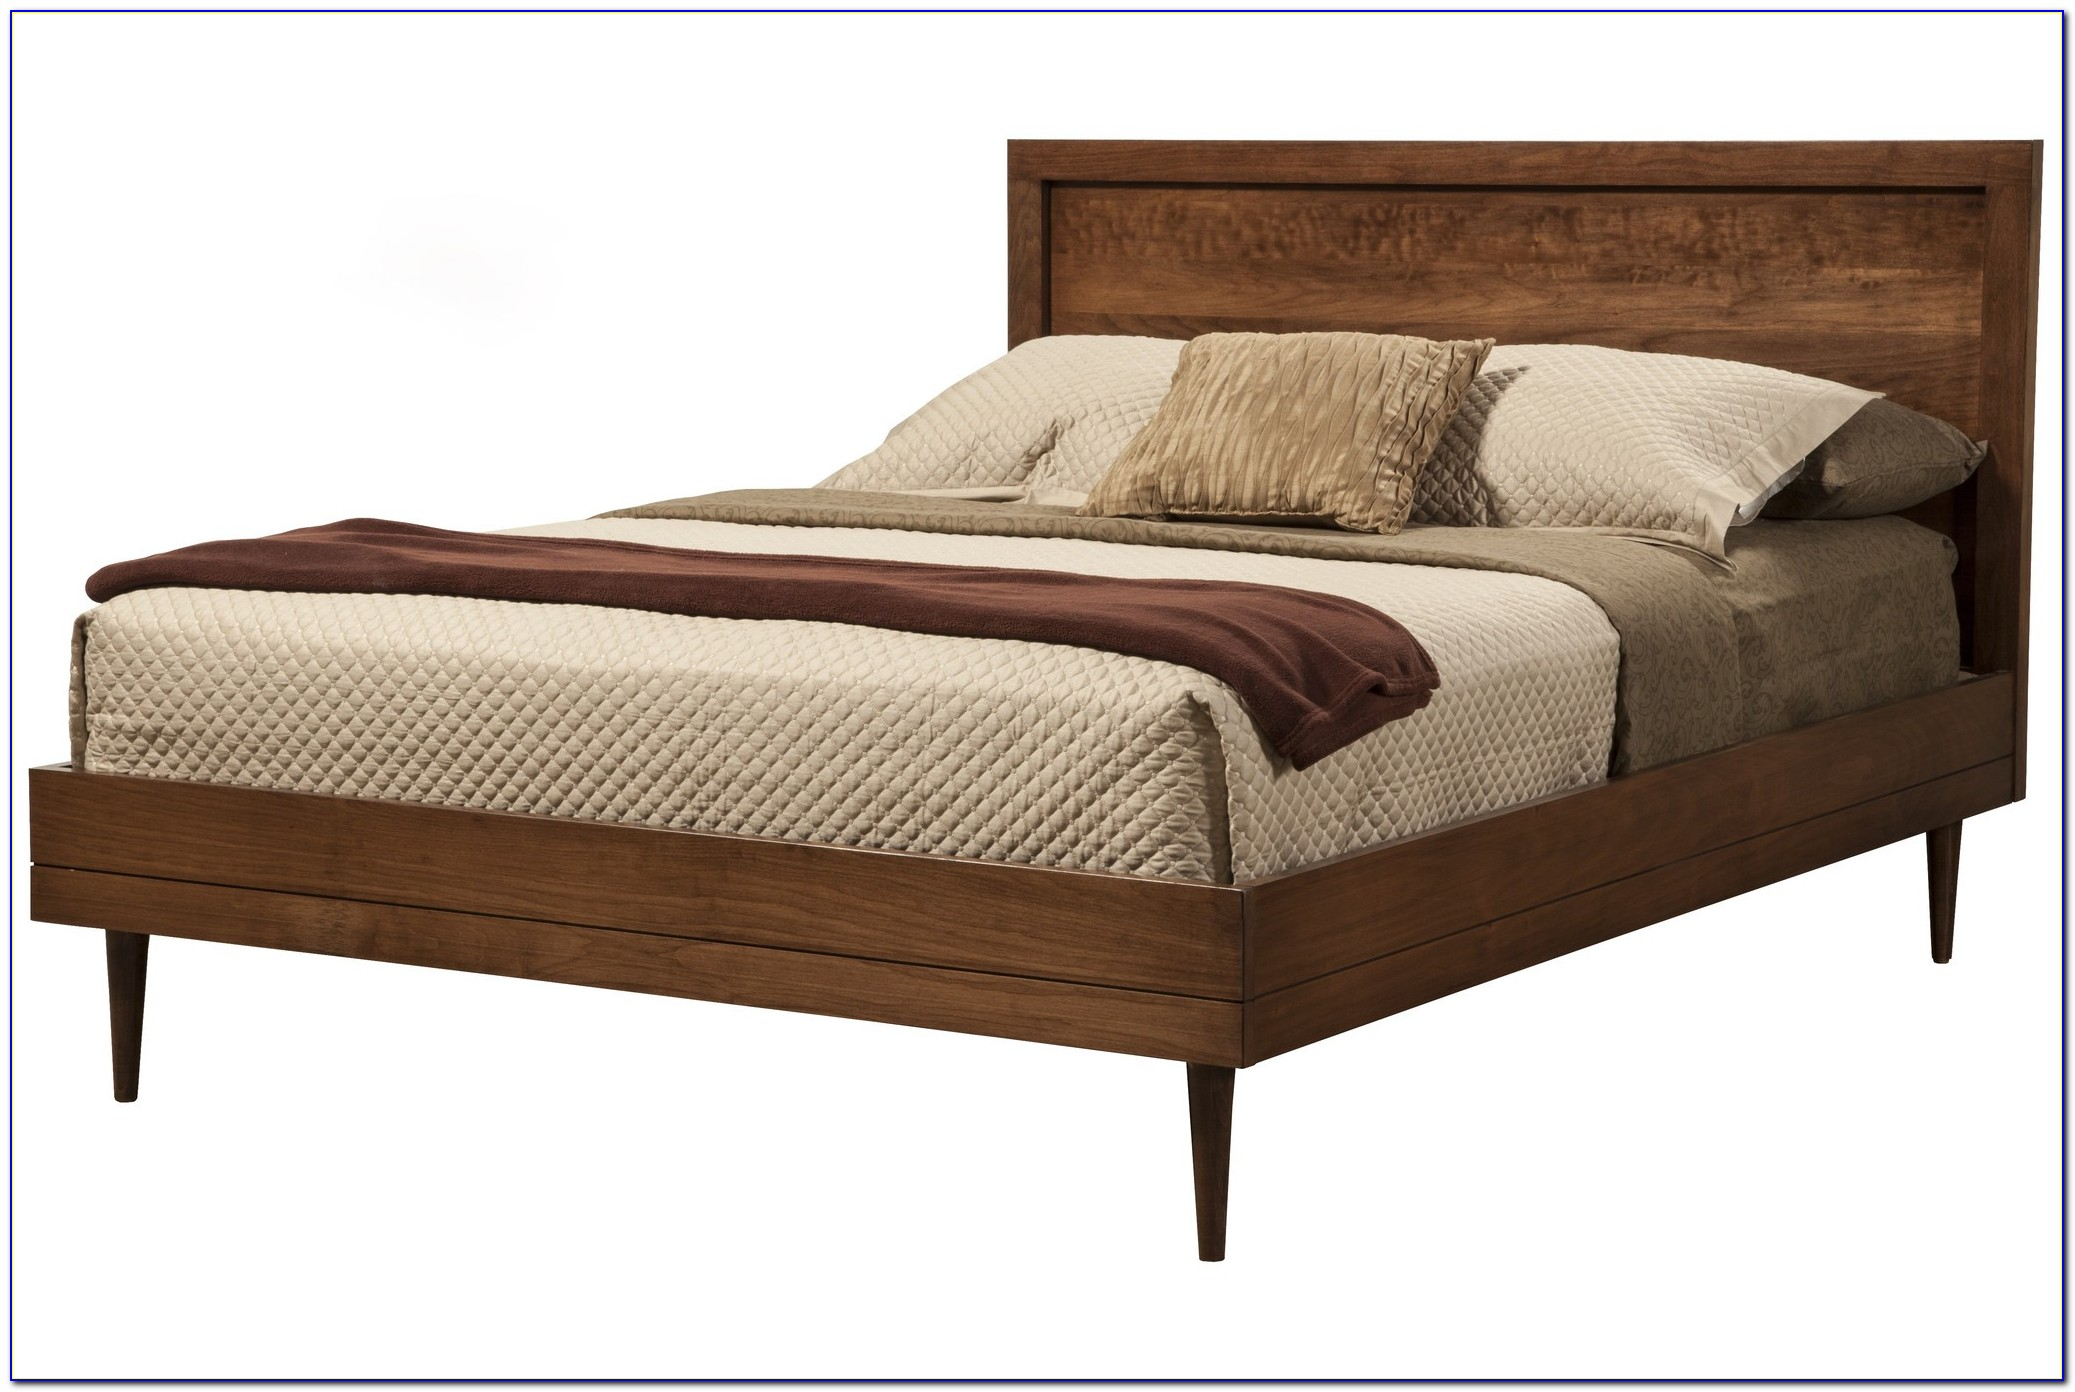 King Size Bed Headboard Plans